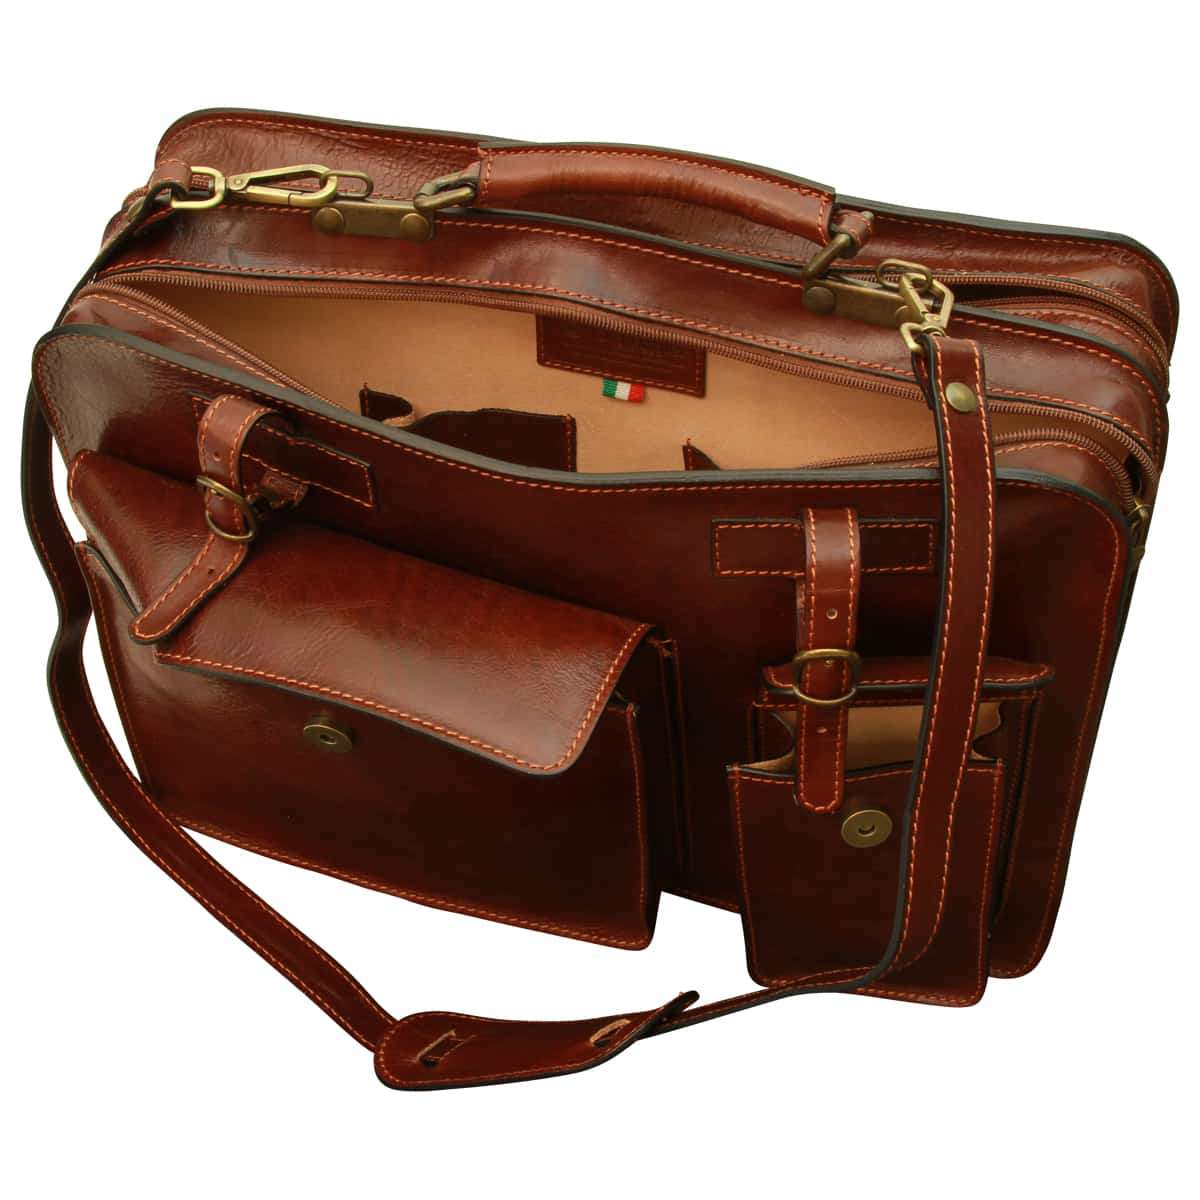 Leather Briefcase with belt straps - Brown | 006205MA UK | Old Angler Firenze